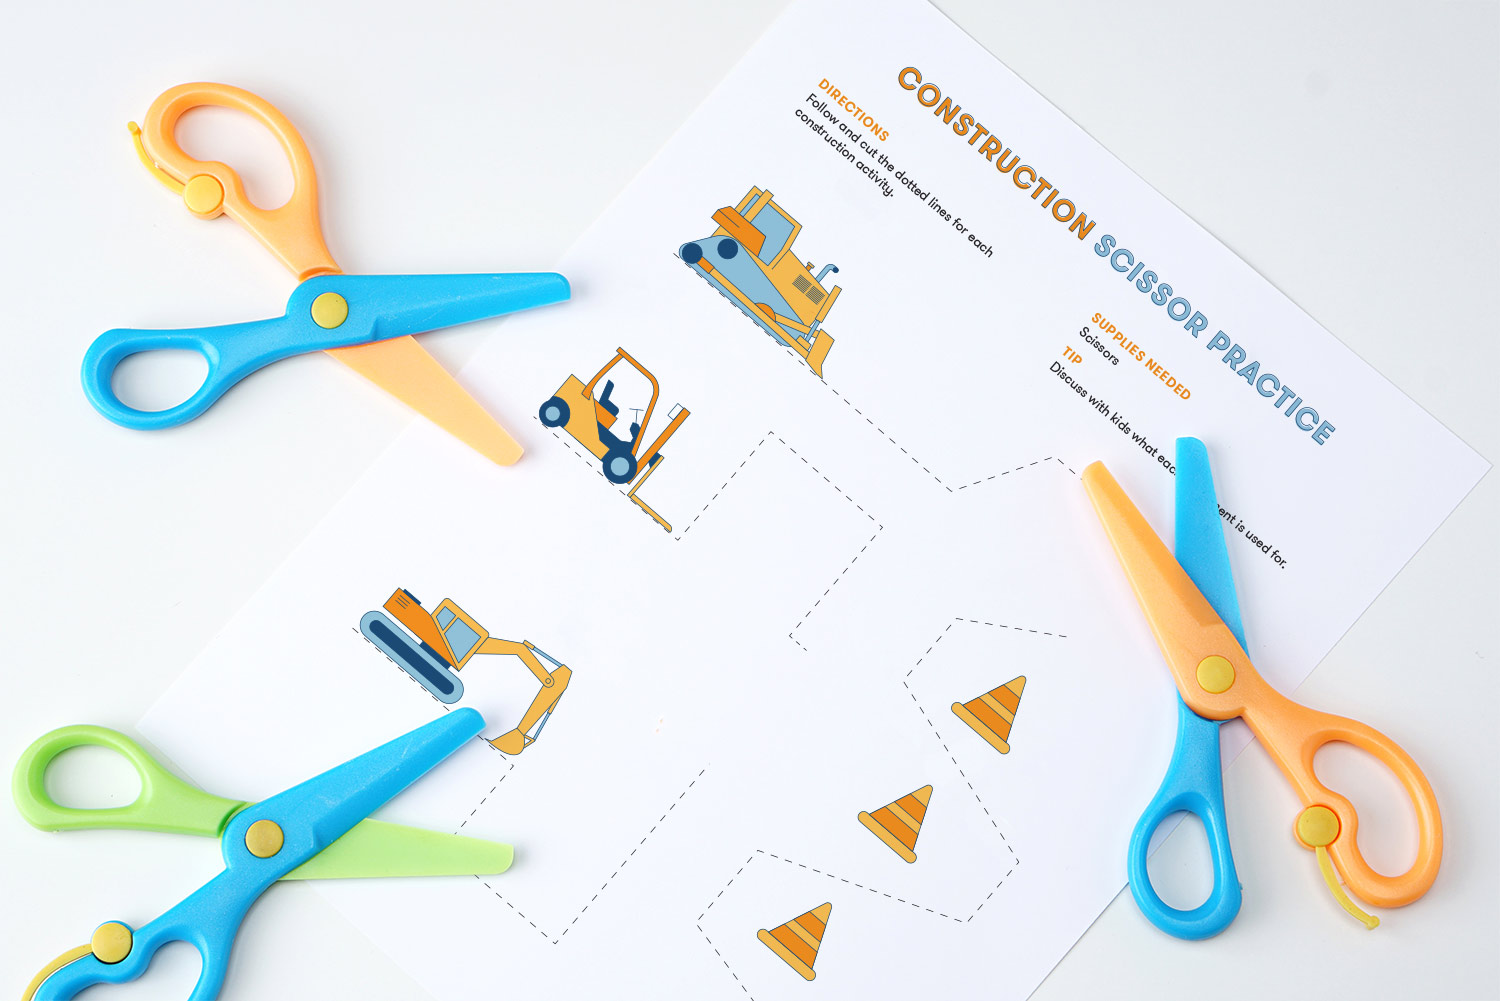 Scissor cutting activity featuring construction equipment lines